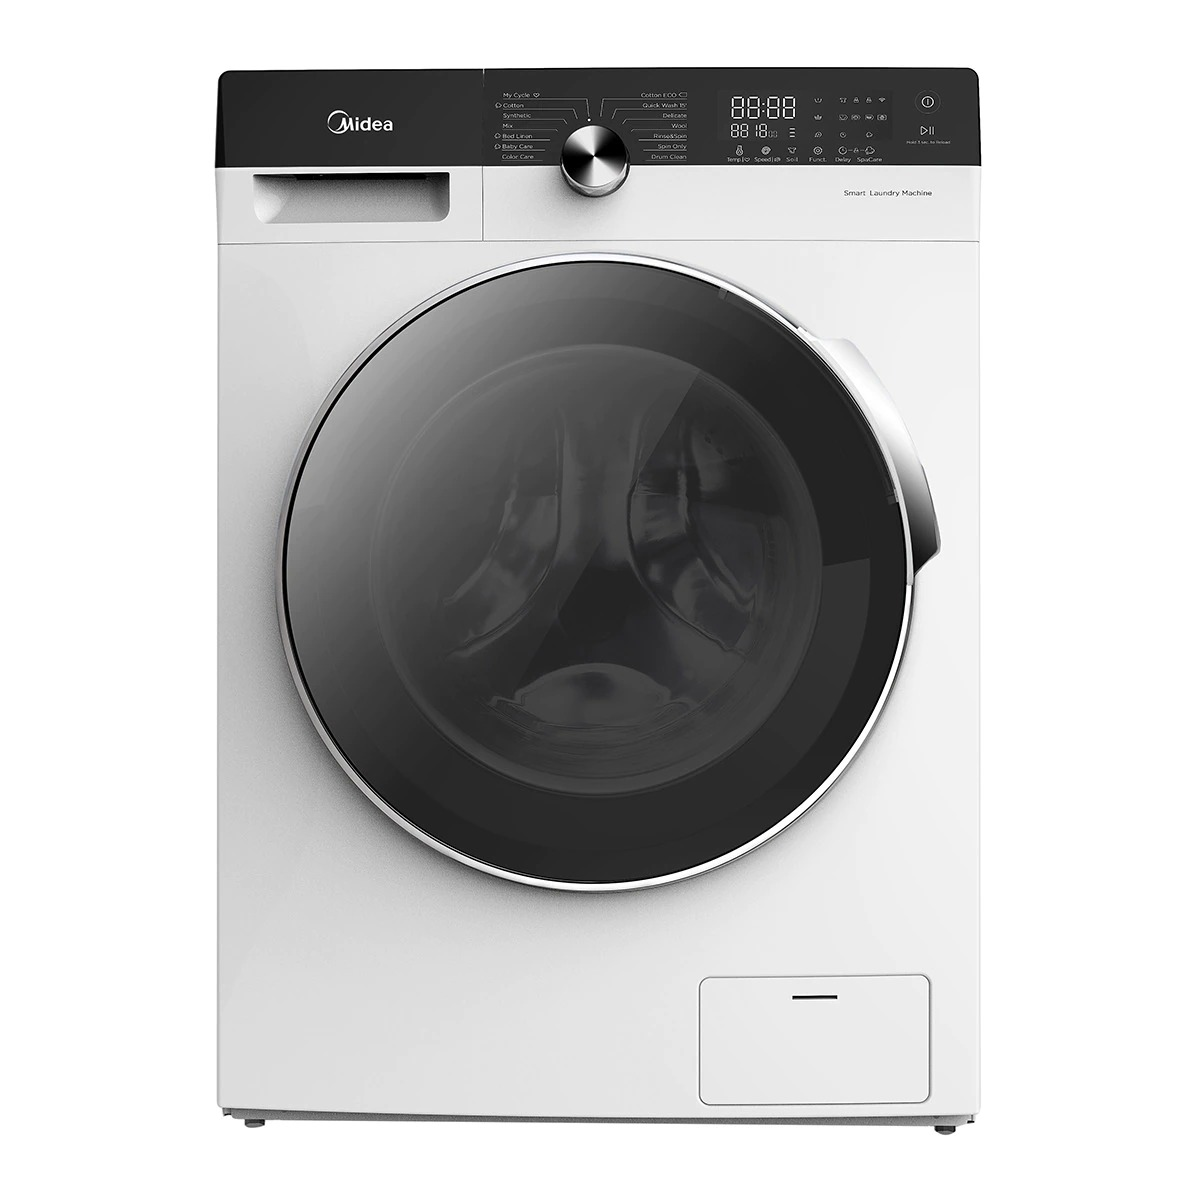 Midea Knight Series ML09K1400w 9 Kg 1,400 rpm Front Loading Washer